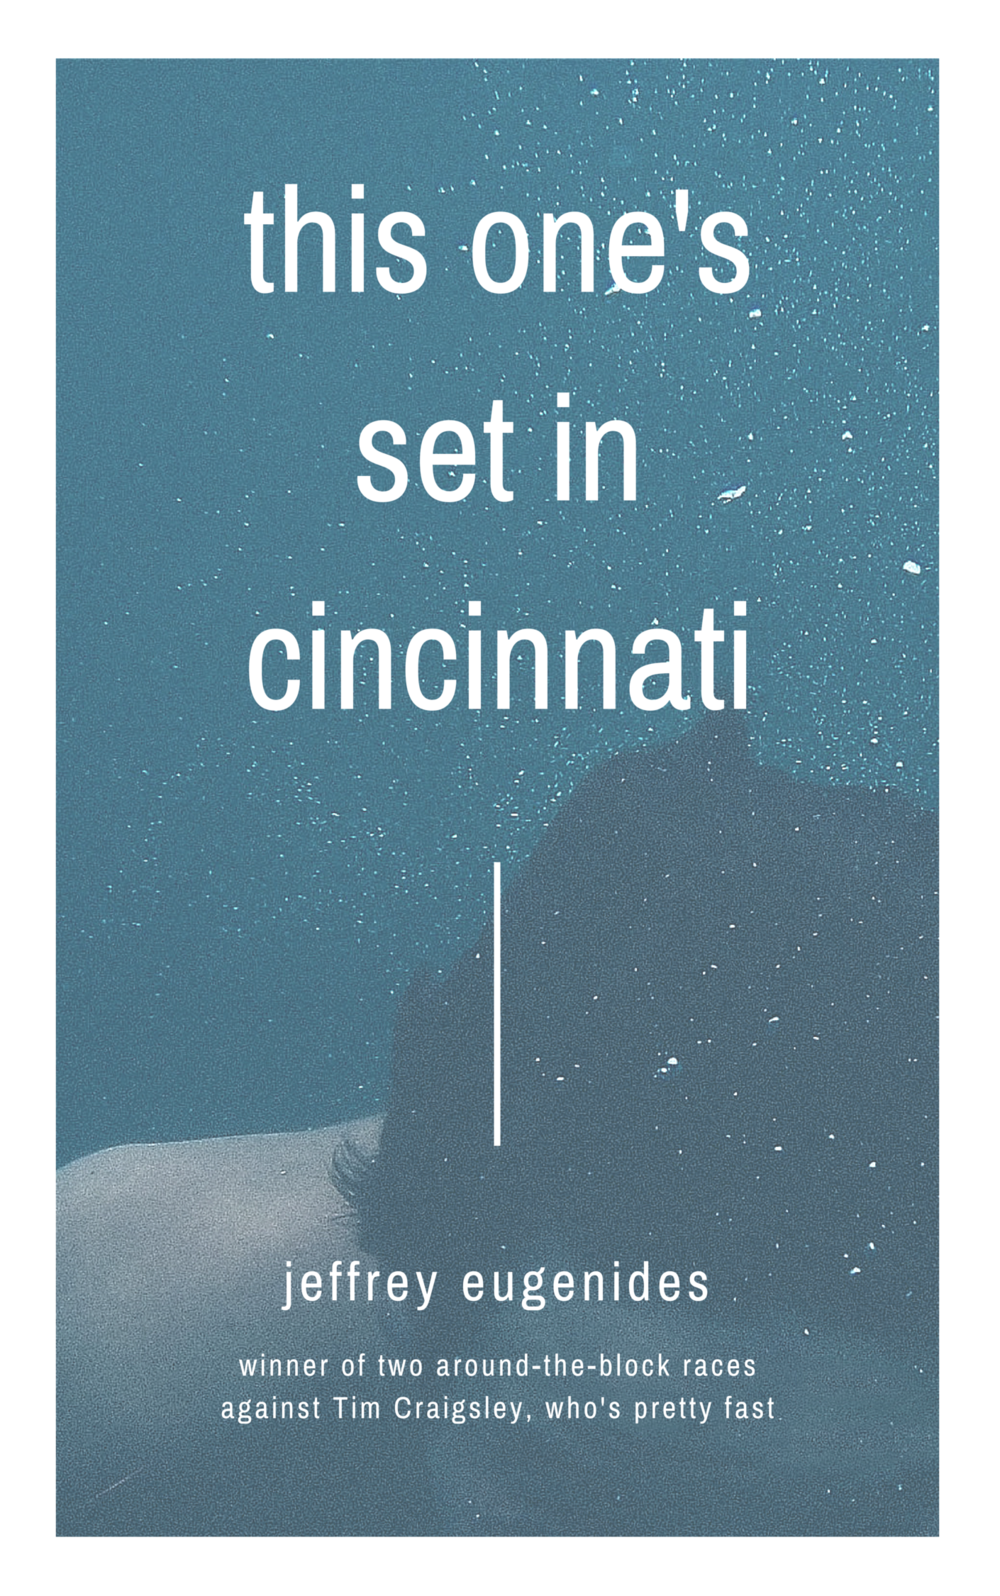 A stunning move for literature- a novel in which something happens in Cincinnati.